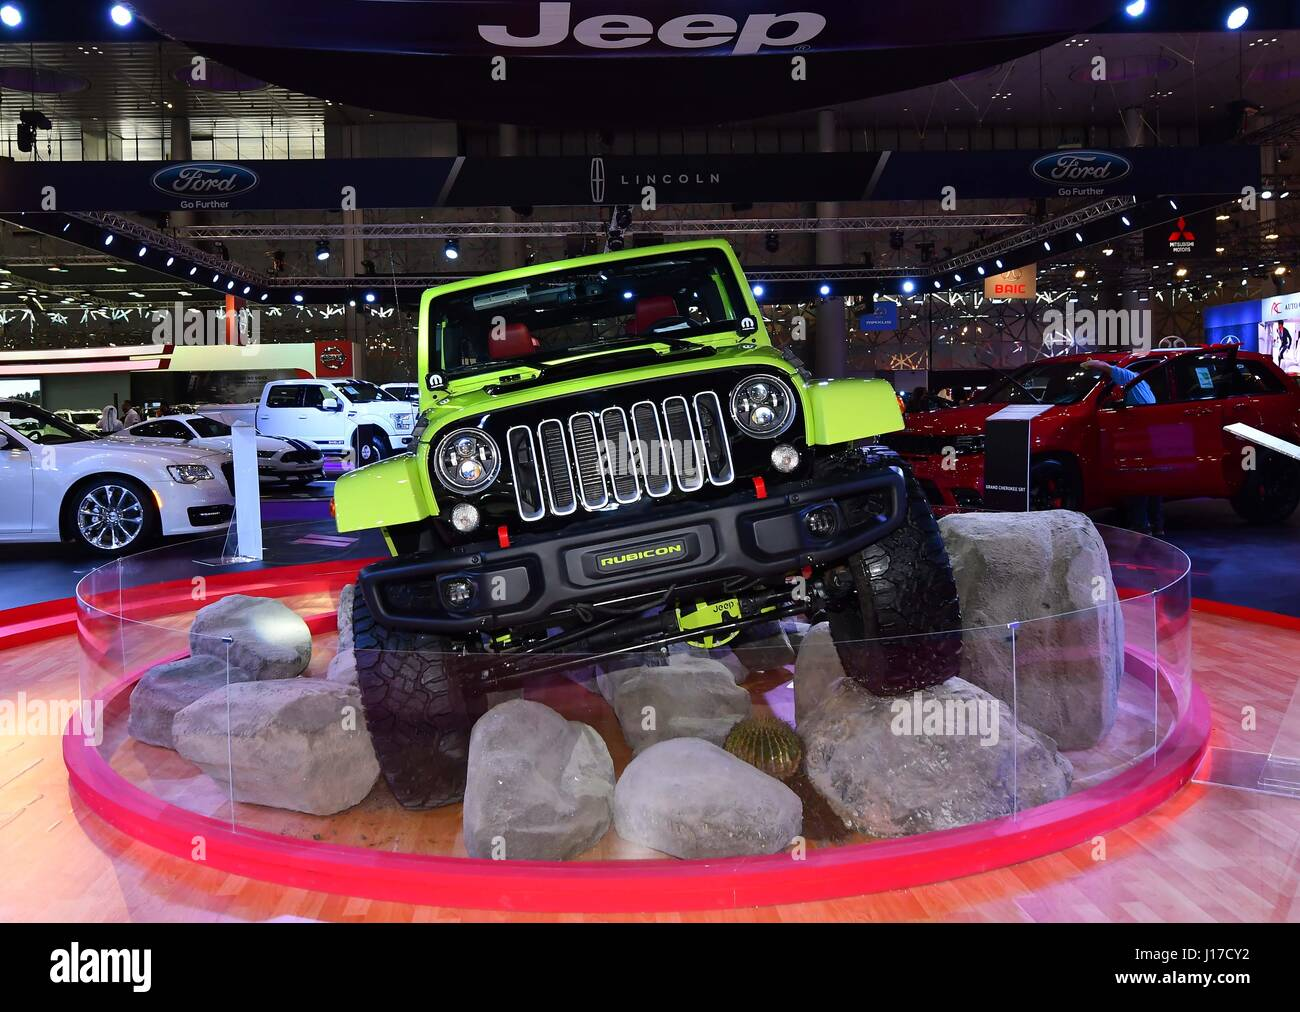 Doha, Capital of Qatar. 18th Apr, 2017. The Jeep Wrangler Rubicon is displayed during the Qatar Motor Show 2017 - Stock Image